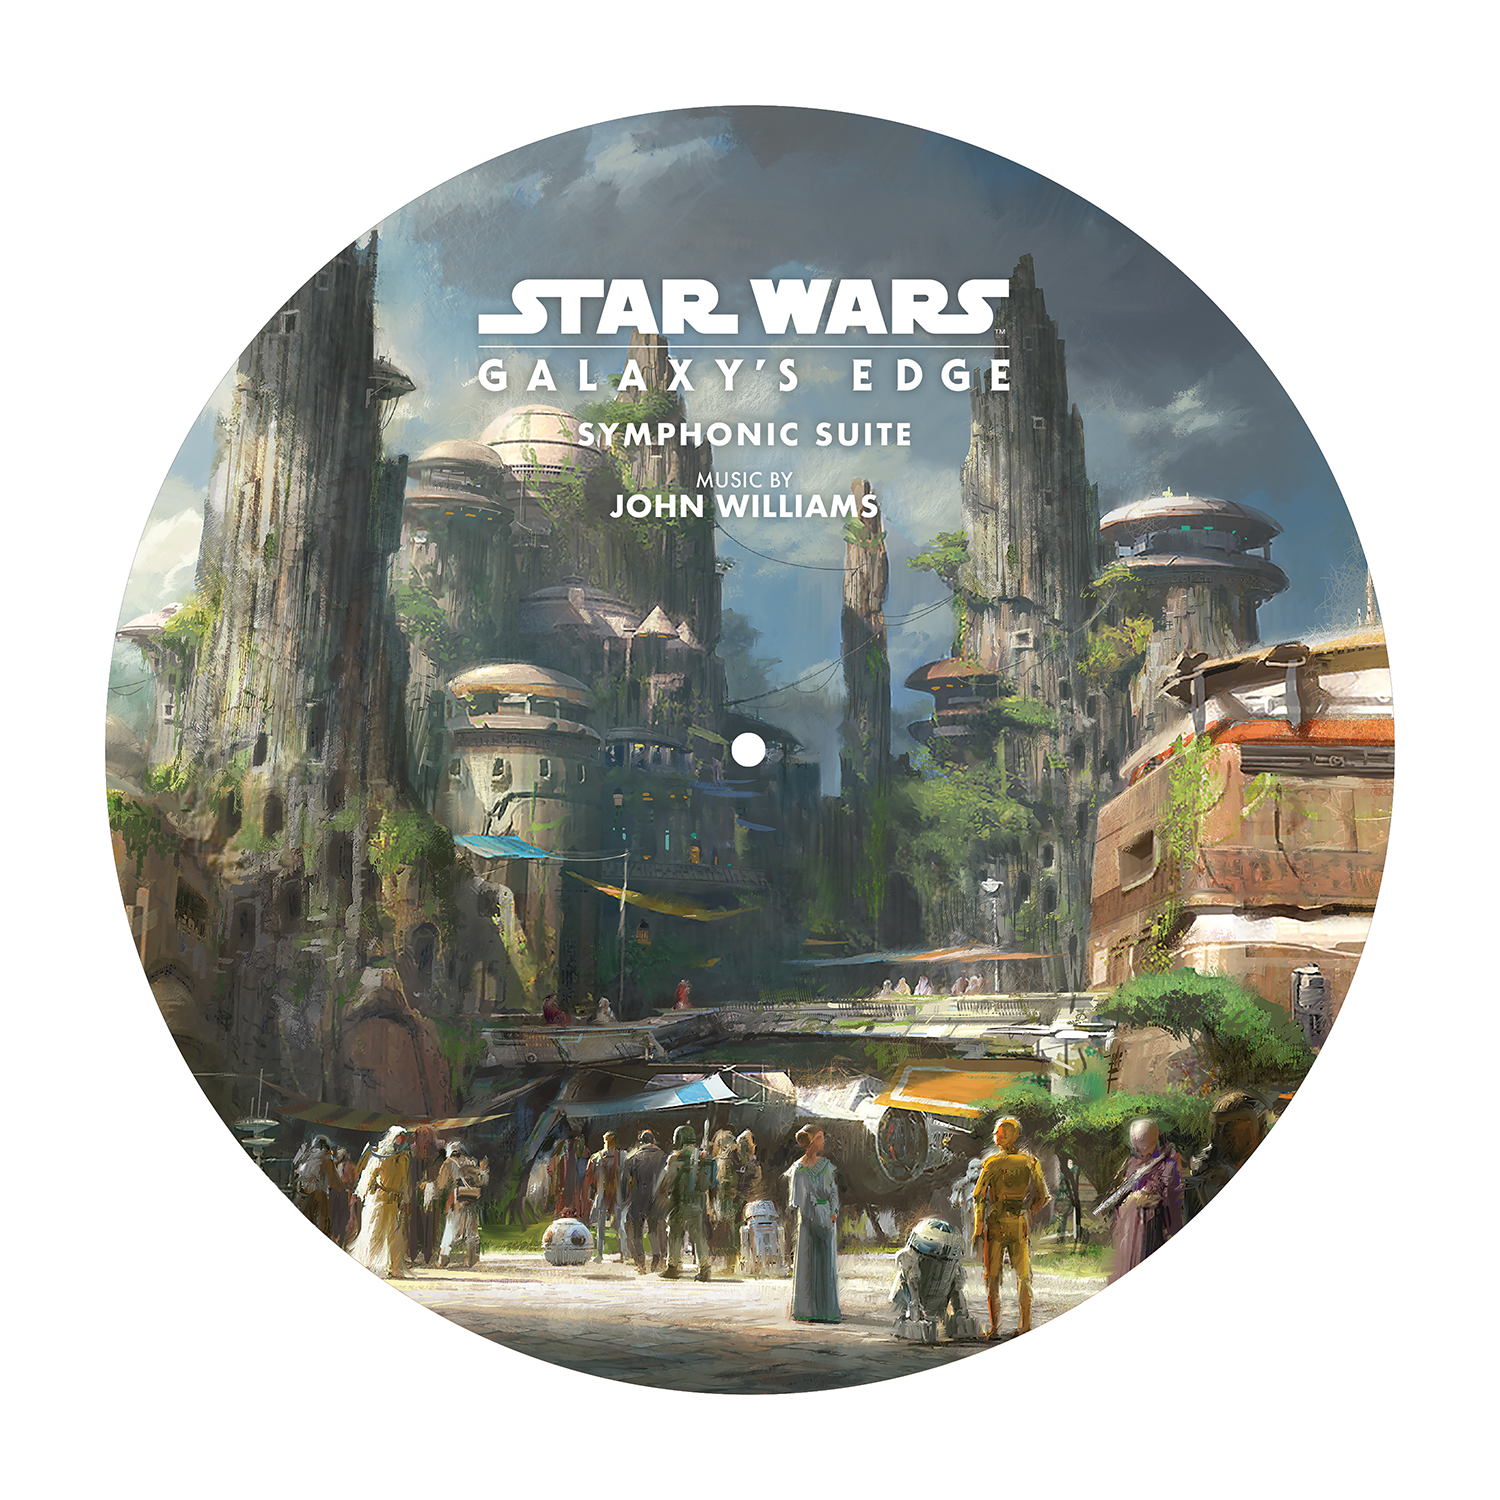 SW_GalaxysEdge_PictureDisc_A.jpg